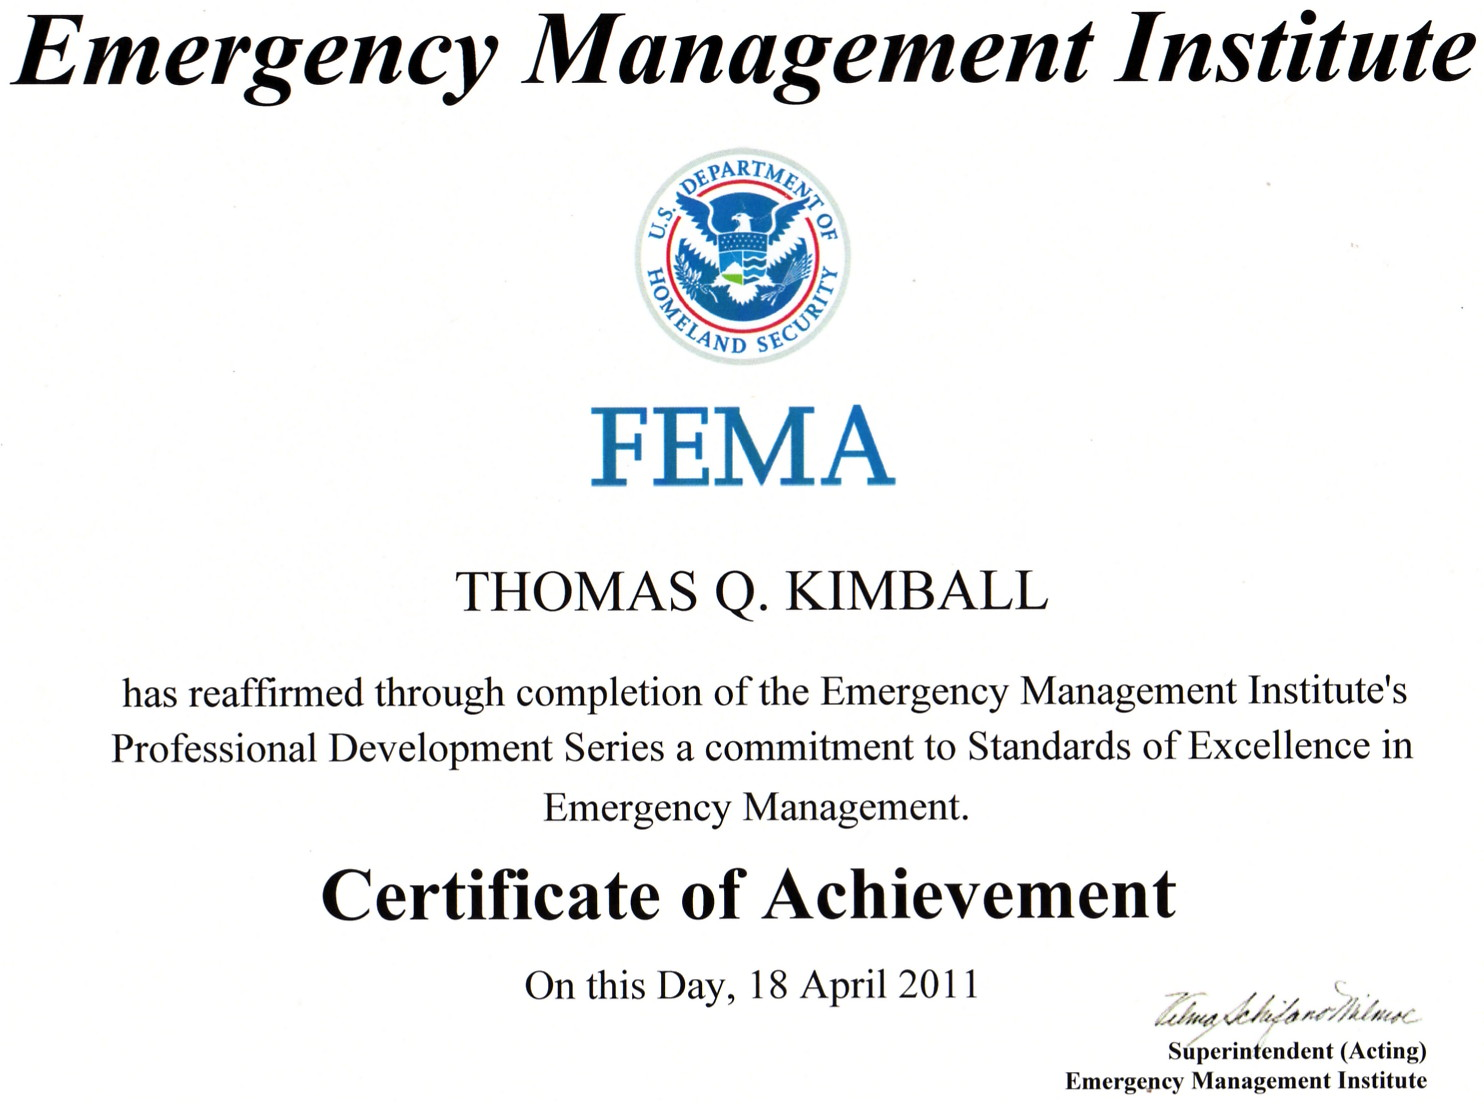 Thomas quick kimball wa8uns blog fema continuity of operations i believe that the requirements for the fema professional development series pds certificate were a little bit harder in 2011 as i believe fema changed xflitez Gallery